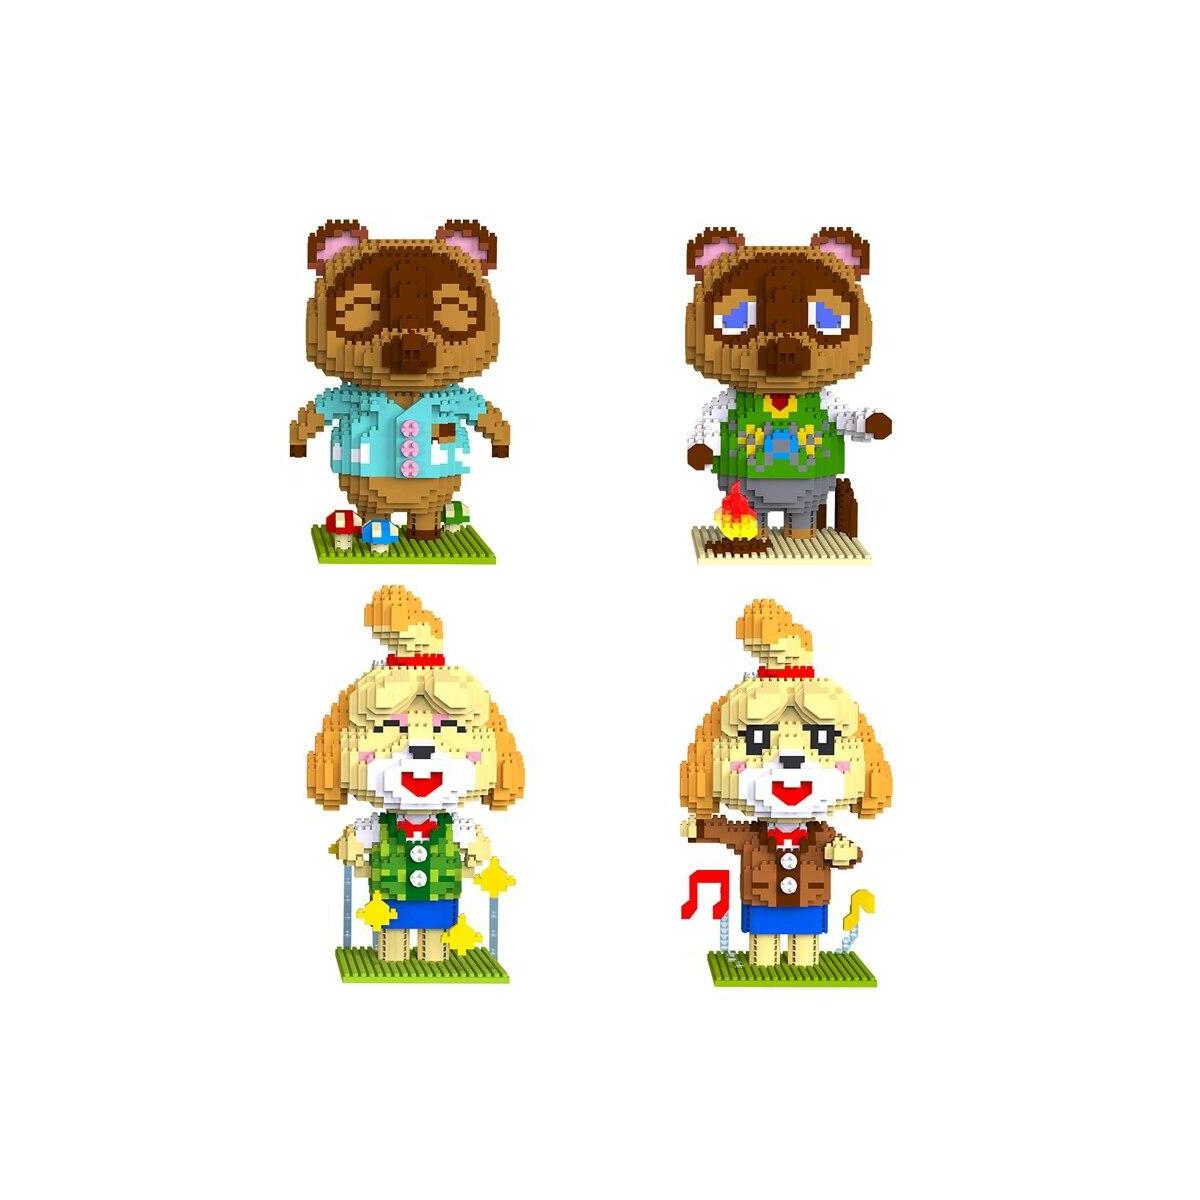 Animal Crossing Tom Nook and Isabelle Lego Style Building Block Set 1224pcs+, 6004-2 / 6in